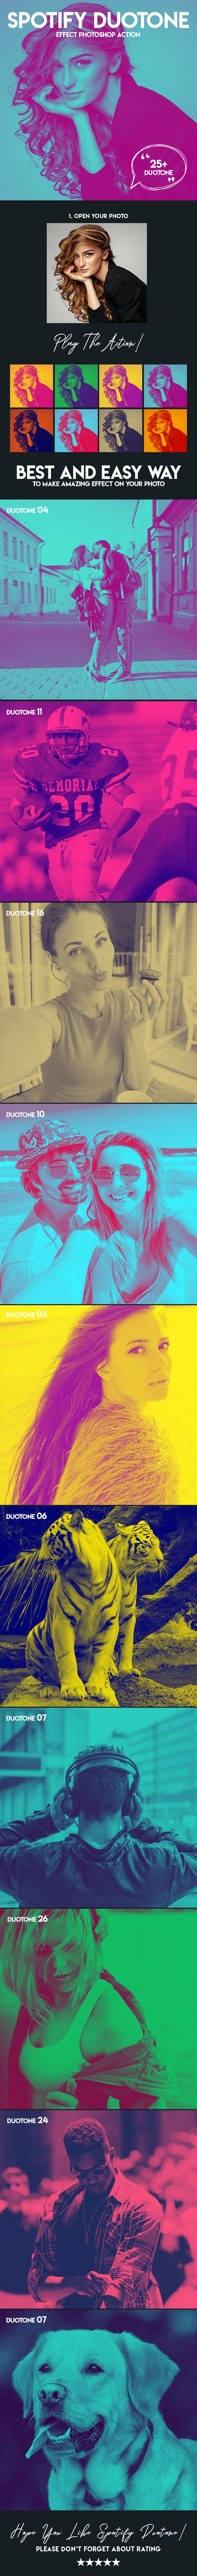 Spotify Duotone Effect Photoshop Action - Photo Effects Actions